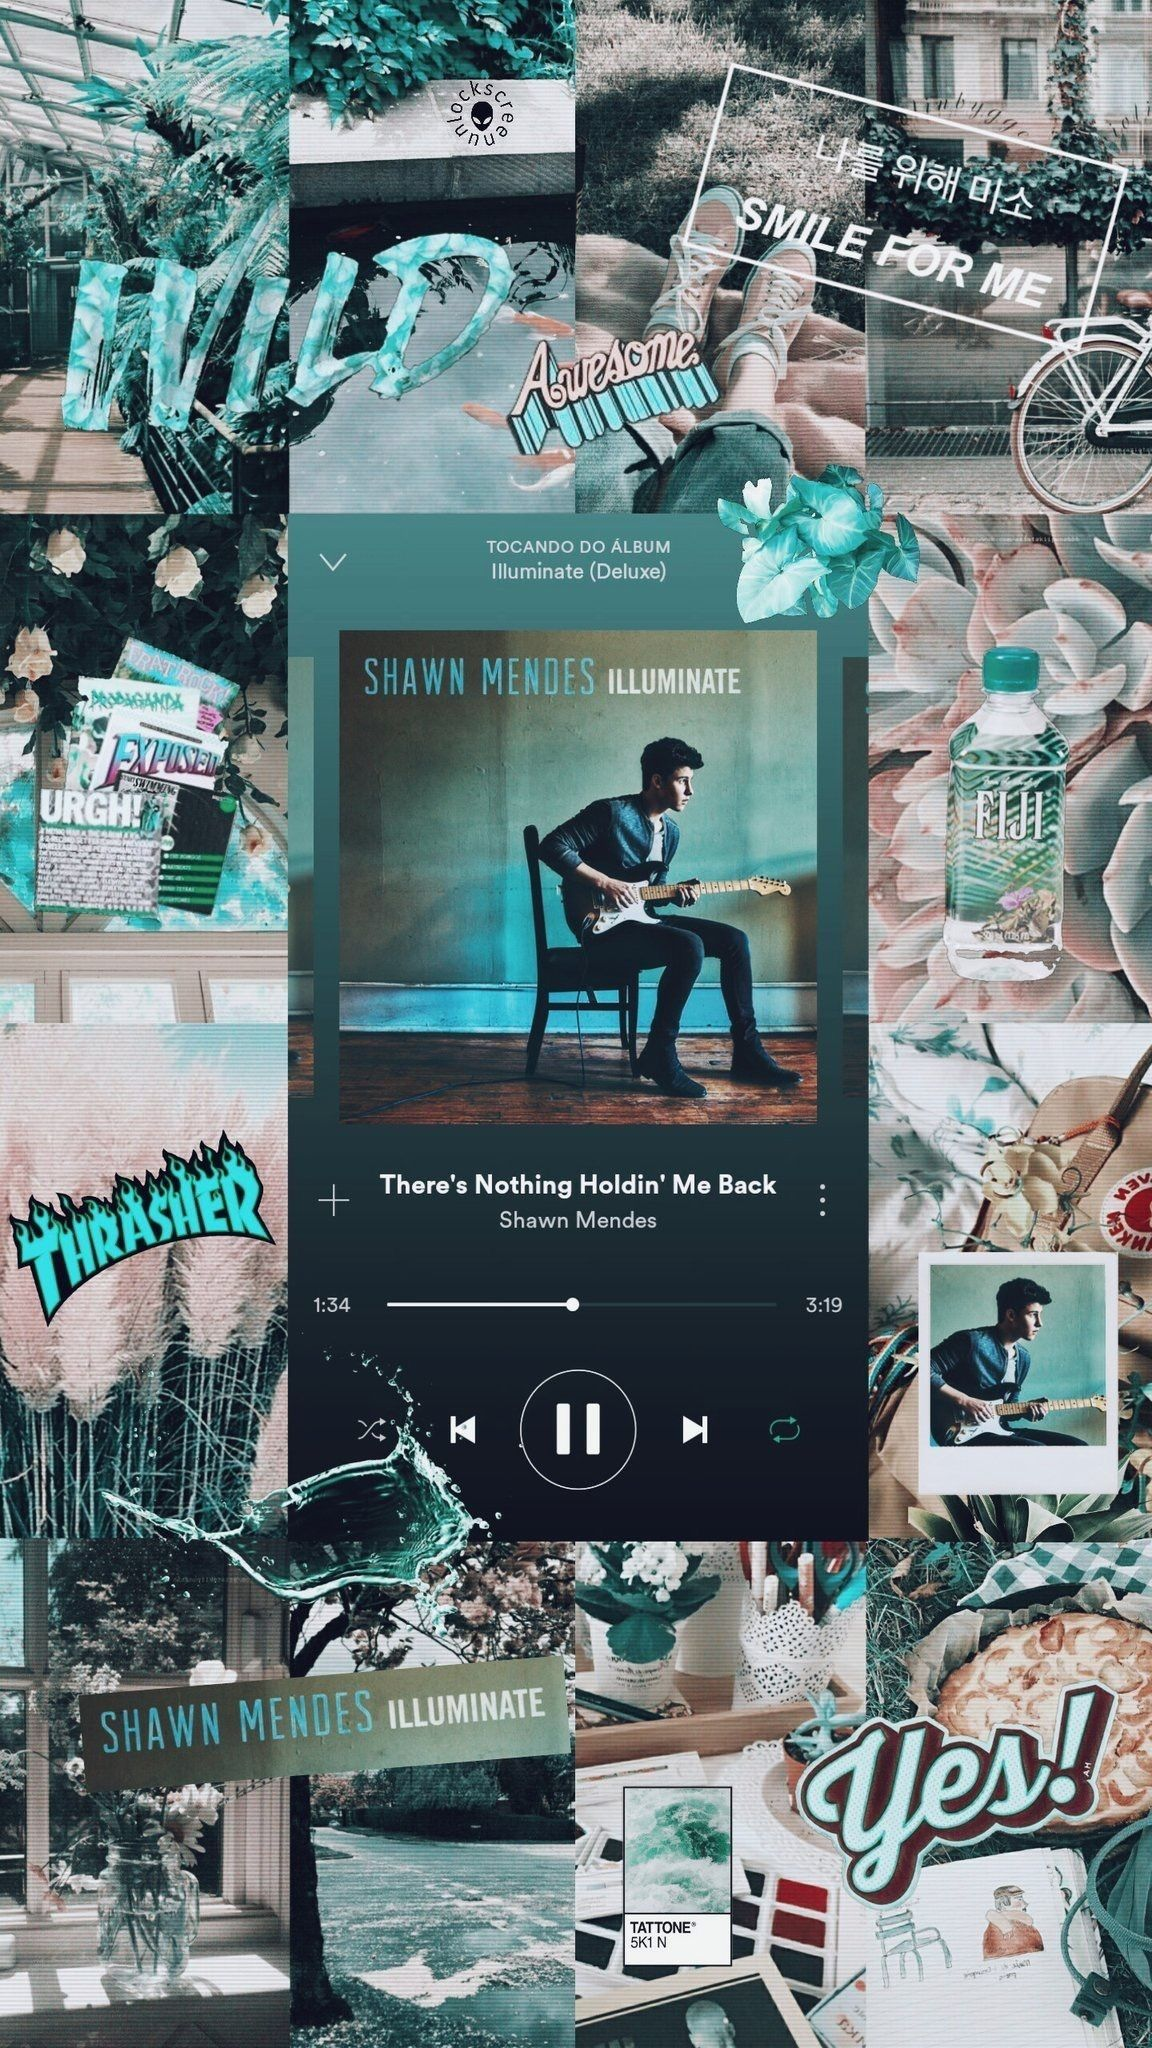 Shawn Mendes Lost In Japan Aesthetic Aesthetic Japan Lost Mendes Shawn Wallpapers 4k Free Iphone Mobile Shawn Mendes Wallpaper Shawn Mendes Shawn